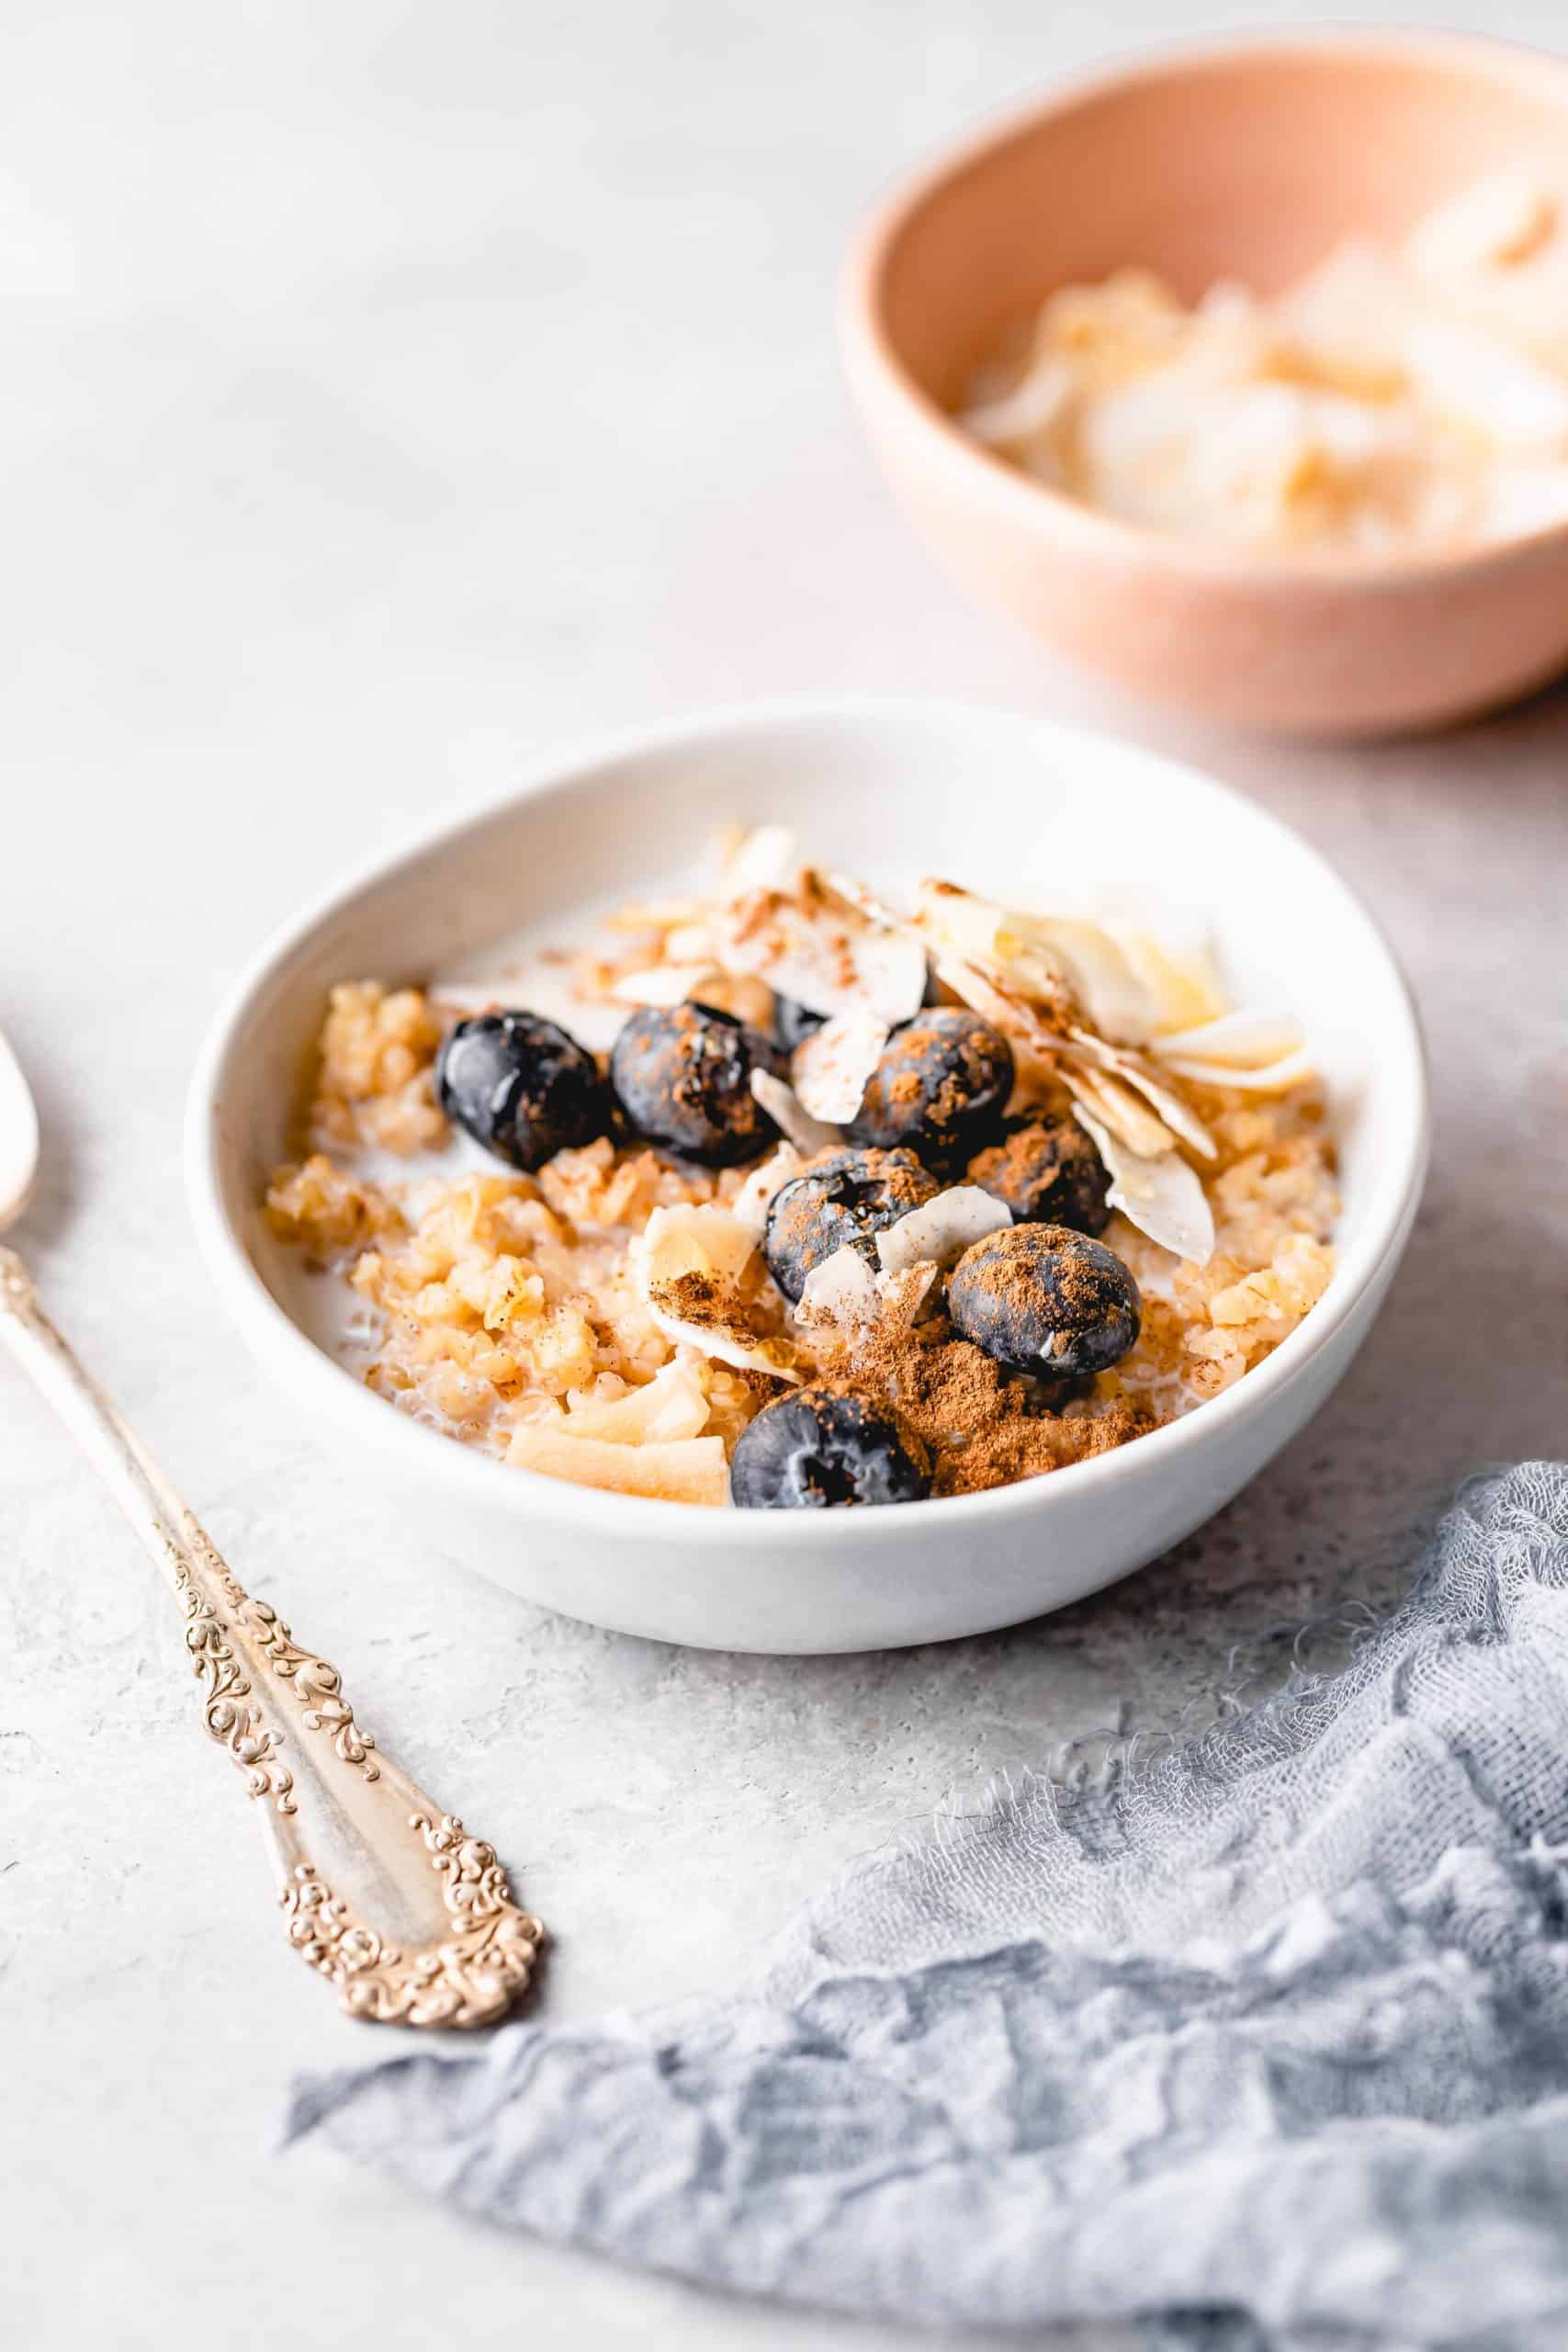 bulgur breakfast bowl topped with coconut flakes, blueberries, cinnamon, and honey